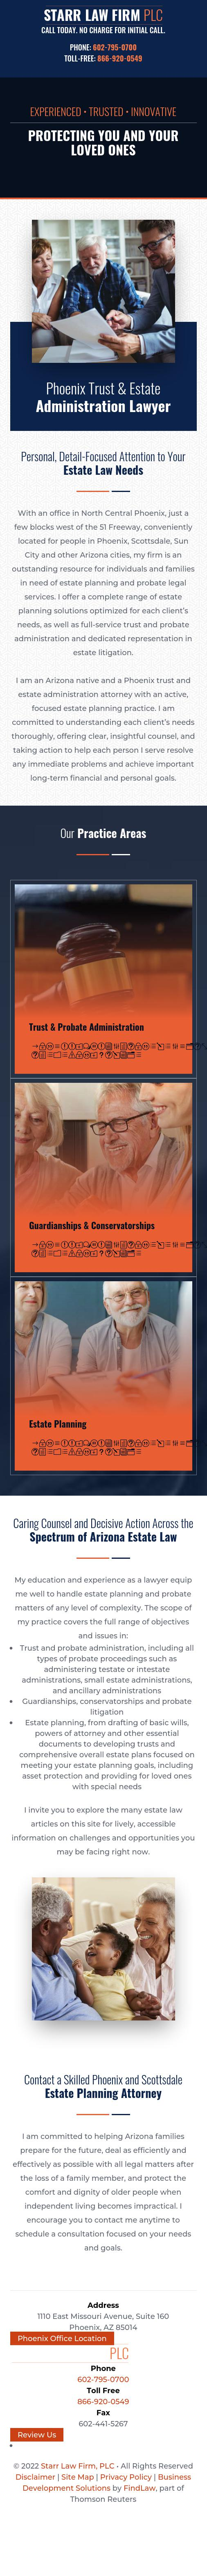 Starr Law Firm, PLC - Phoenix AZ Lawyers